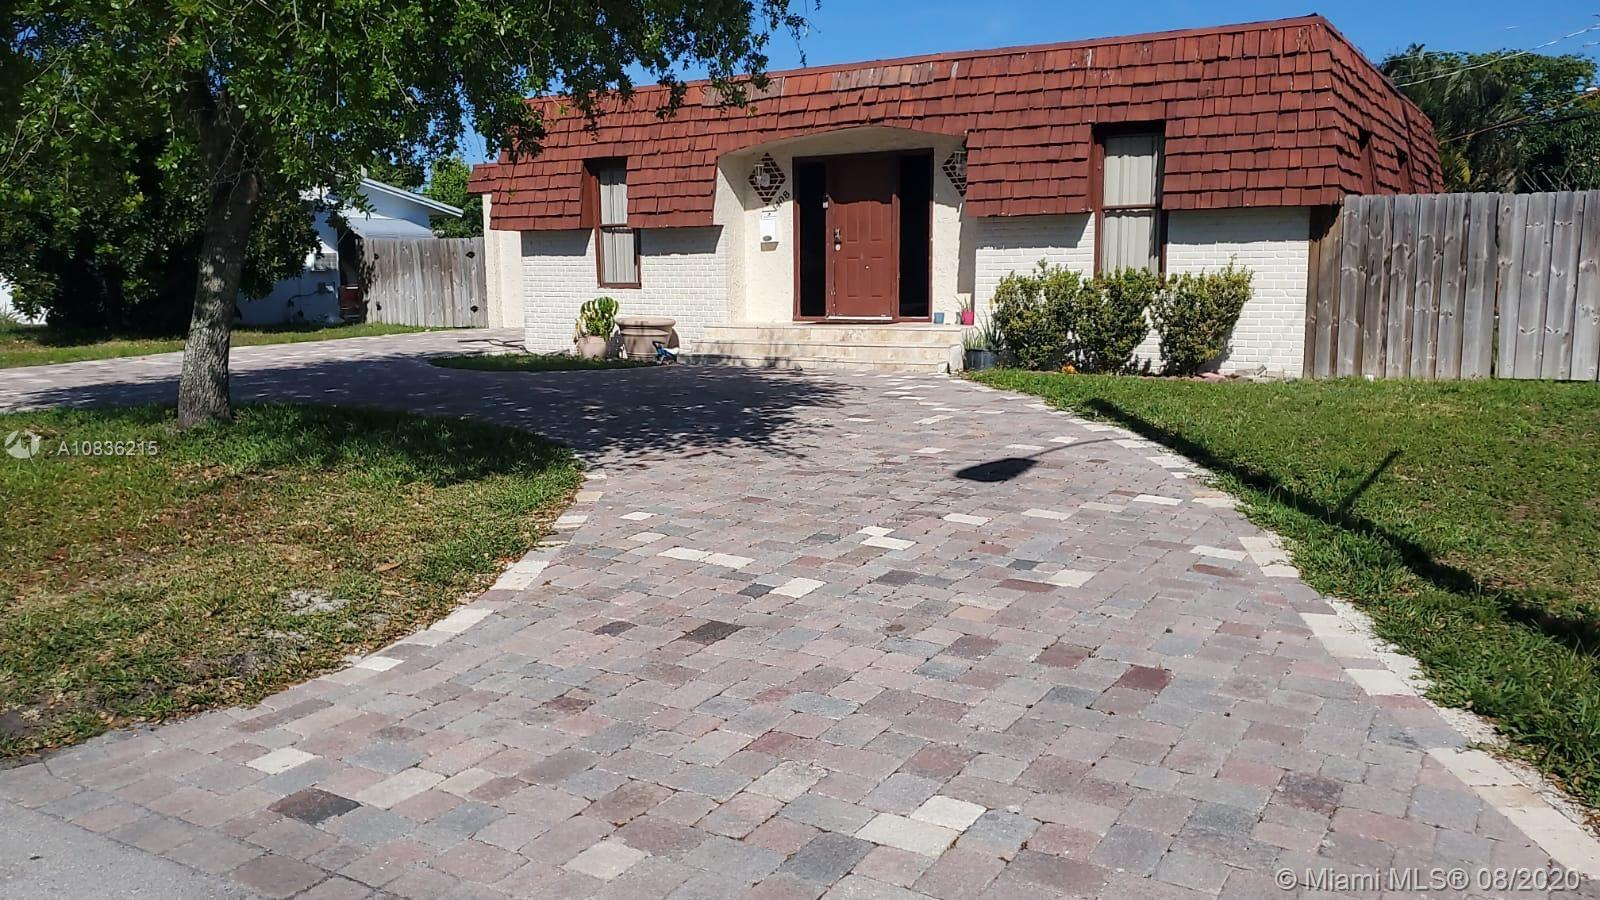 BEAUTIFULLY RENOVATED 5/3 SINGLE FAMILY HOME IN DEERFIELD BEACH. PROPERTY FEATURES FULLY RENOVATED KITCHEN WITH GRANITE COUNTERTOPS, STAINLESS STEEL APPLIANCES, GORGEOUS BACKSPLASH AND RECESSED LIGHTS. PORCELAIN TILES ARE FOUND THROUGHOUT THE HOUSE WITH THE EXCEPTION OF 2 BEDROOMS THAT HAVE WOOD LAMINATE FLOORS. ALL 3 BATHROOMS WERE WONDERFULLY RENOVATED. PROPERTY ALSO HAS A HUGE FENCED IN BACKYARD AND A NEW BRICK DRIVEWAY WAS RECENTLY INSTALLED. THIS HOUSE IS READY FOR YOU AND YOUR FAMILY!